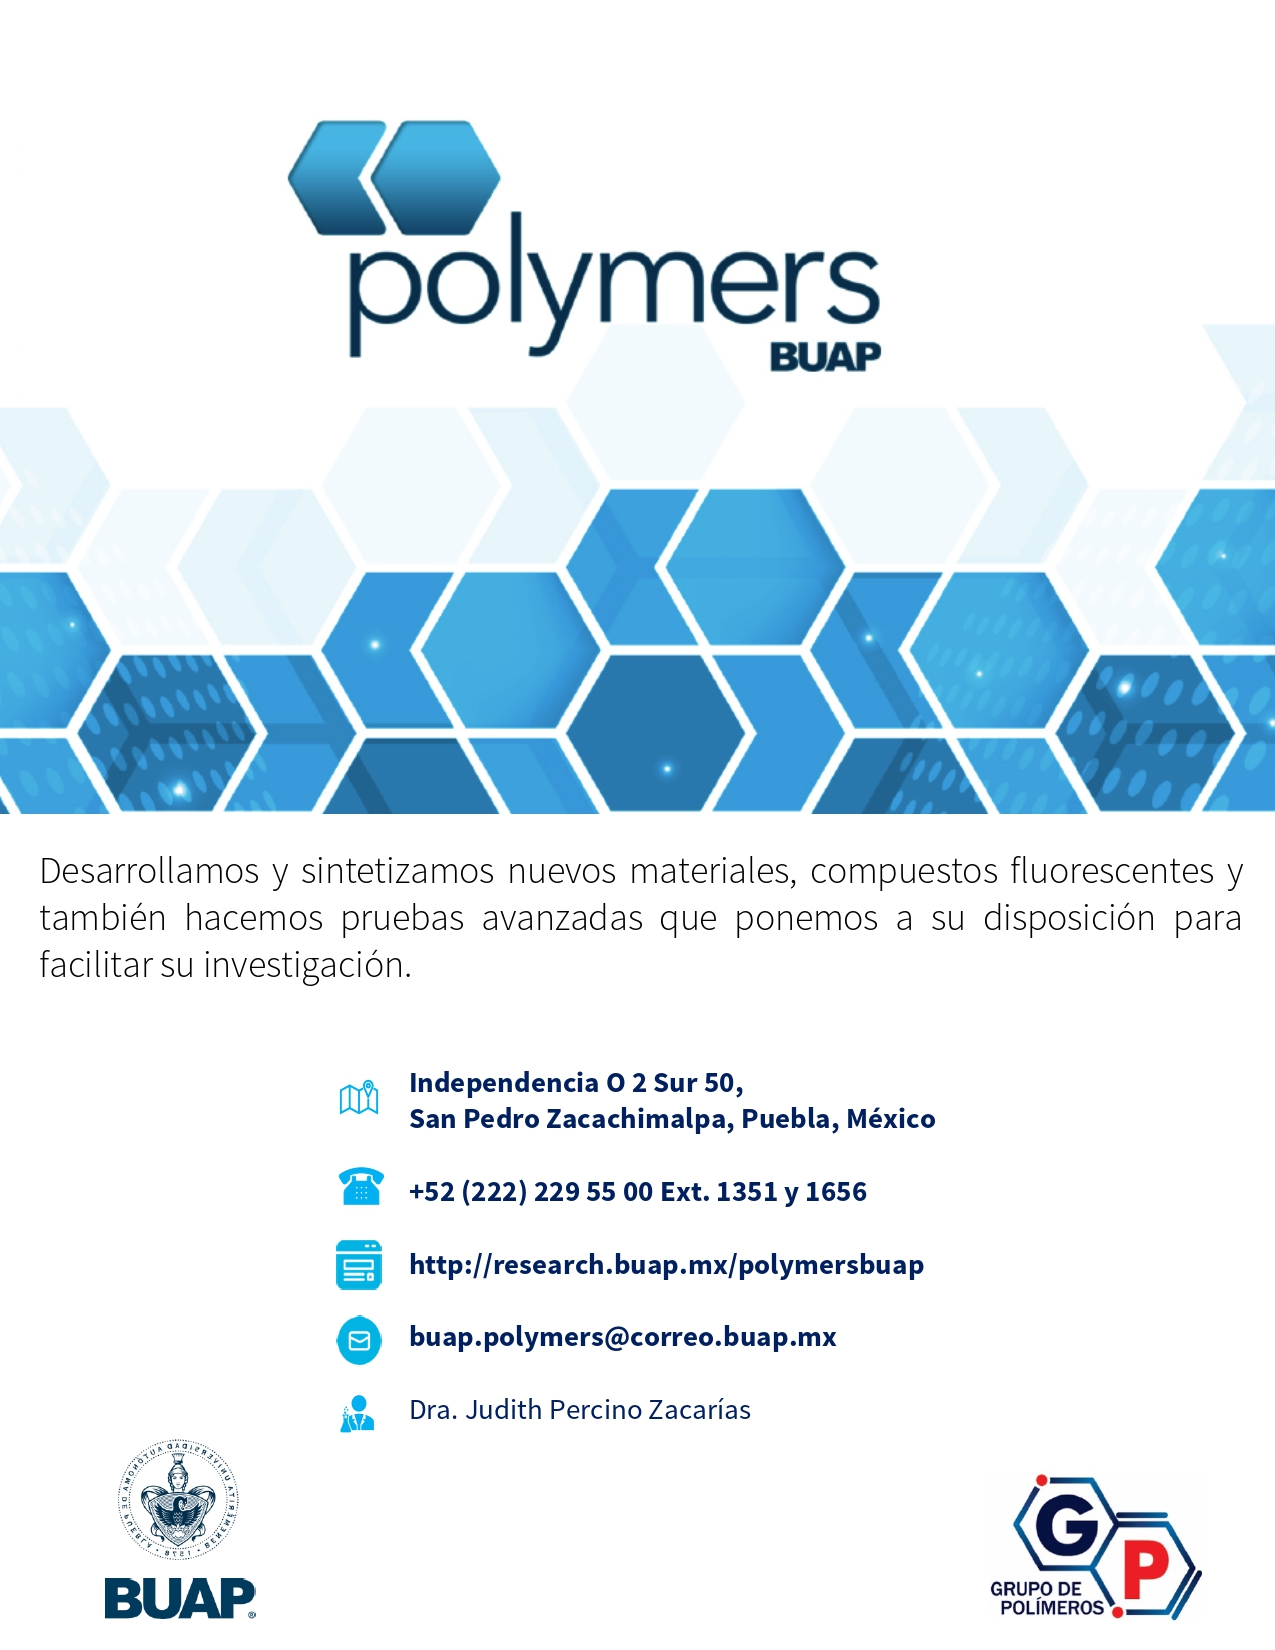 Polymers BUAP